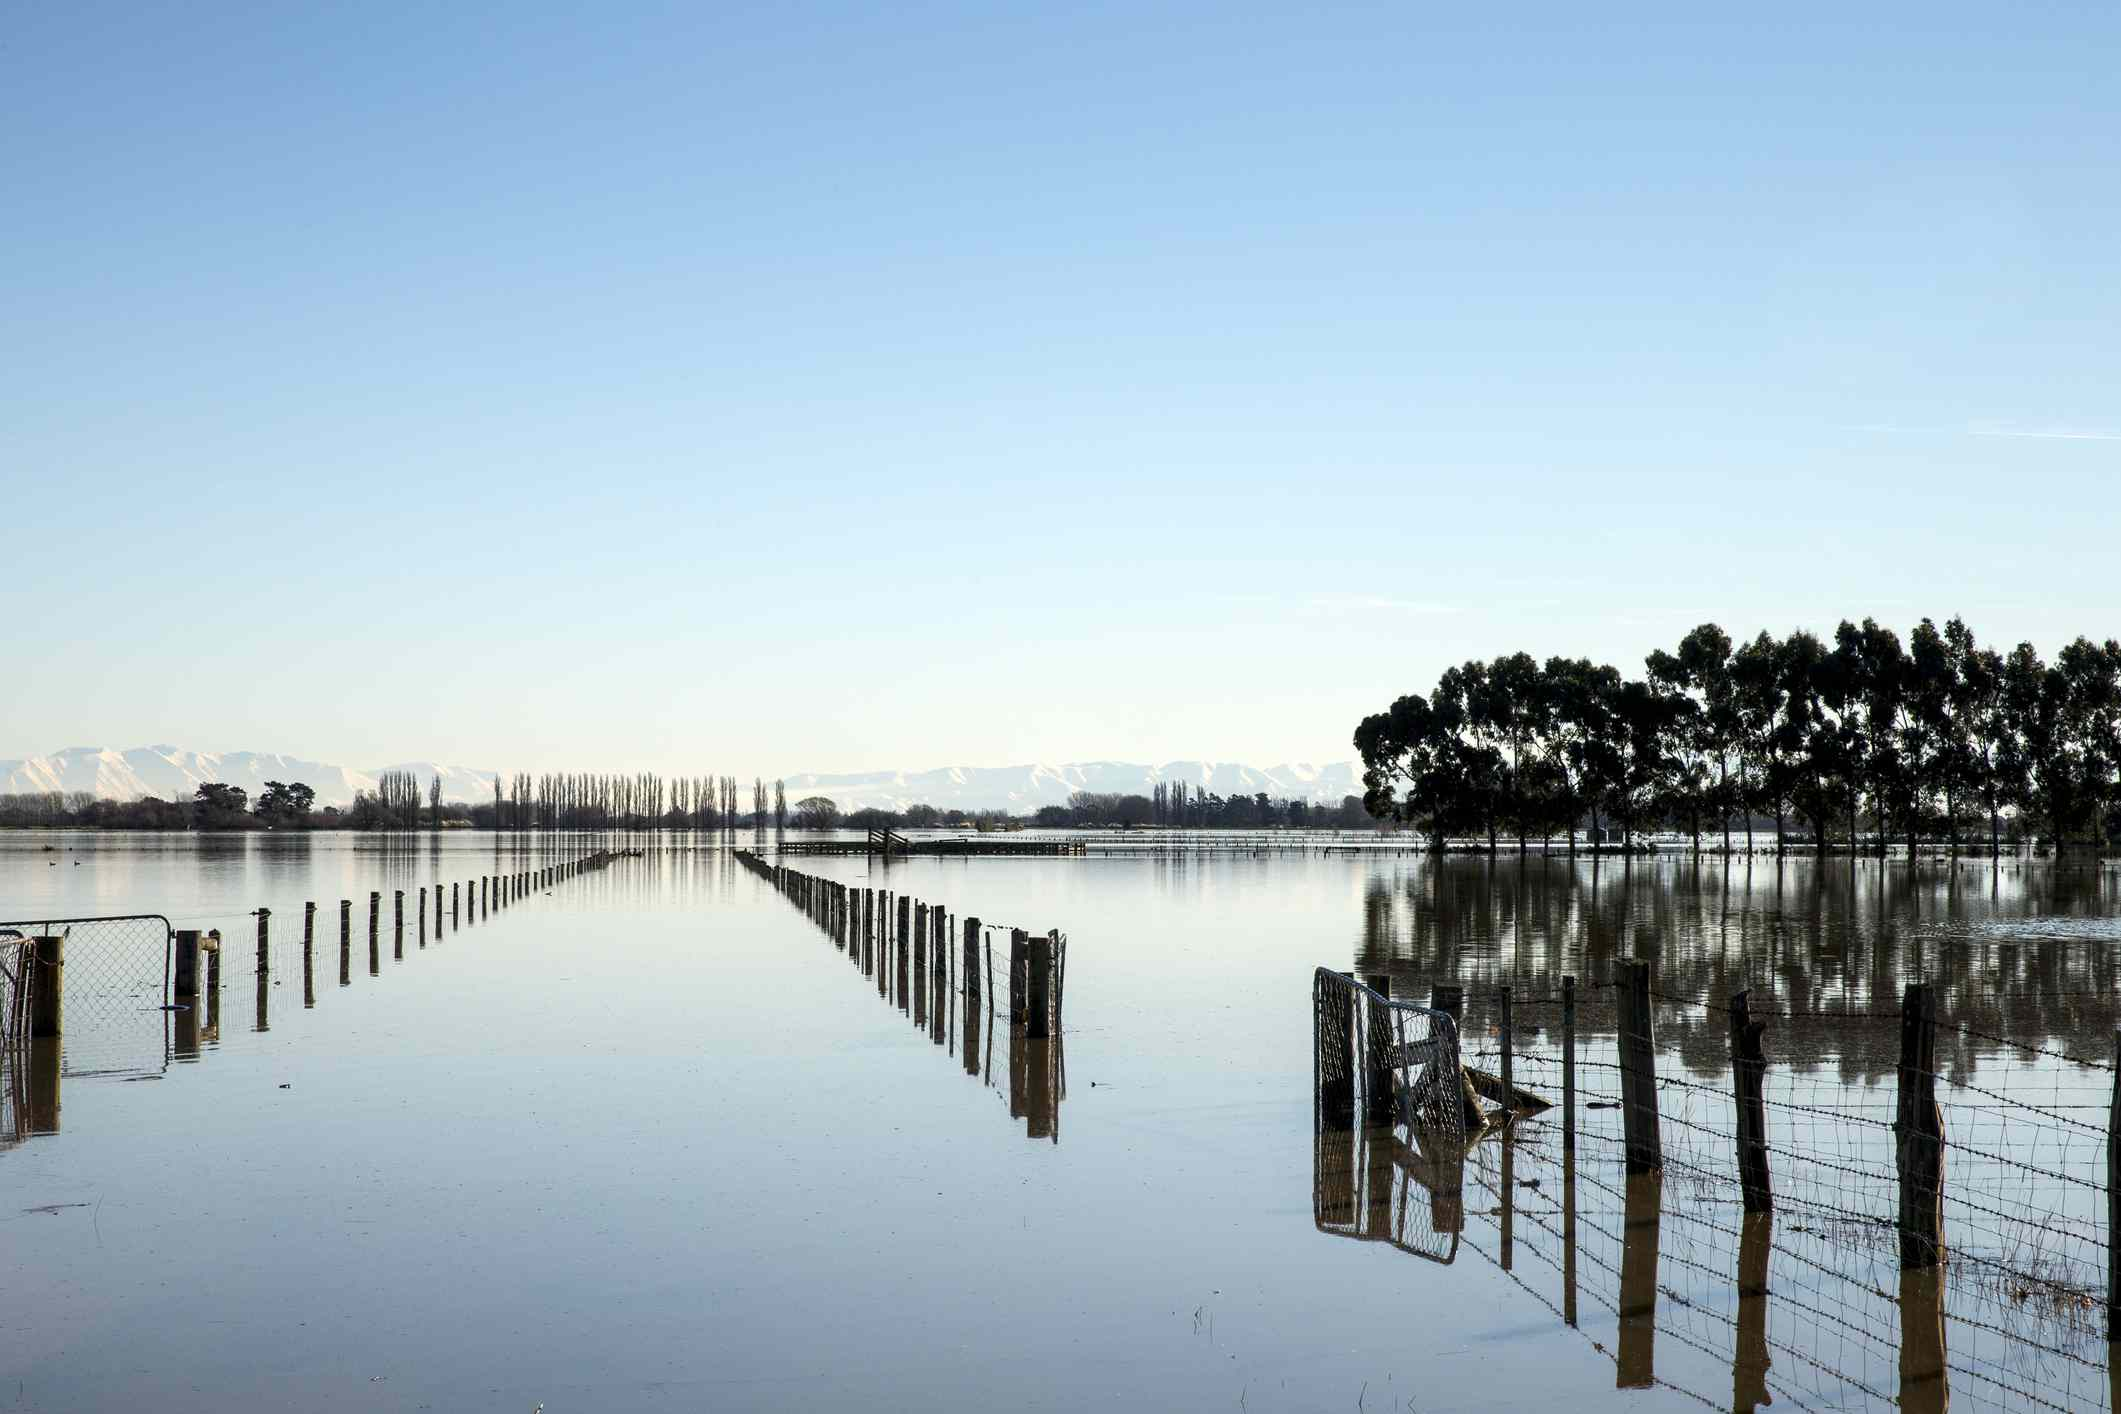 reflective lake surface with fence posts and trees in background